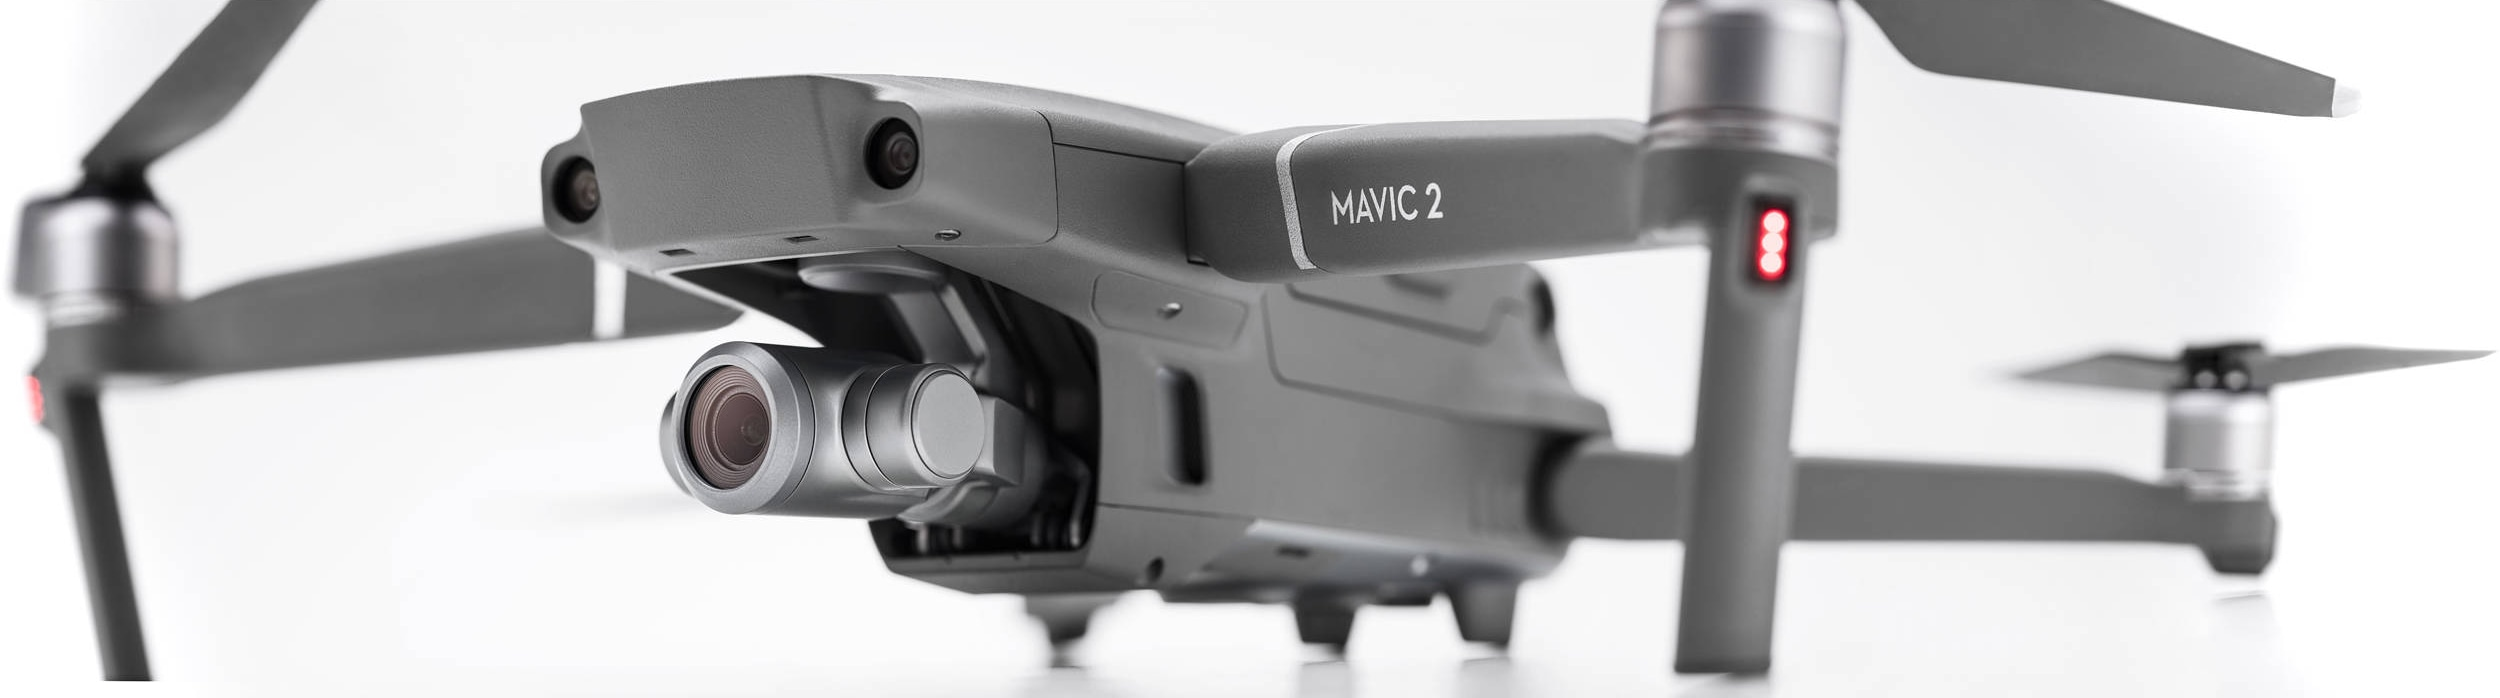 Дрон DJI Mavic 2 Zoom + очки Goggles RE-5